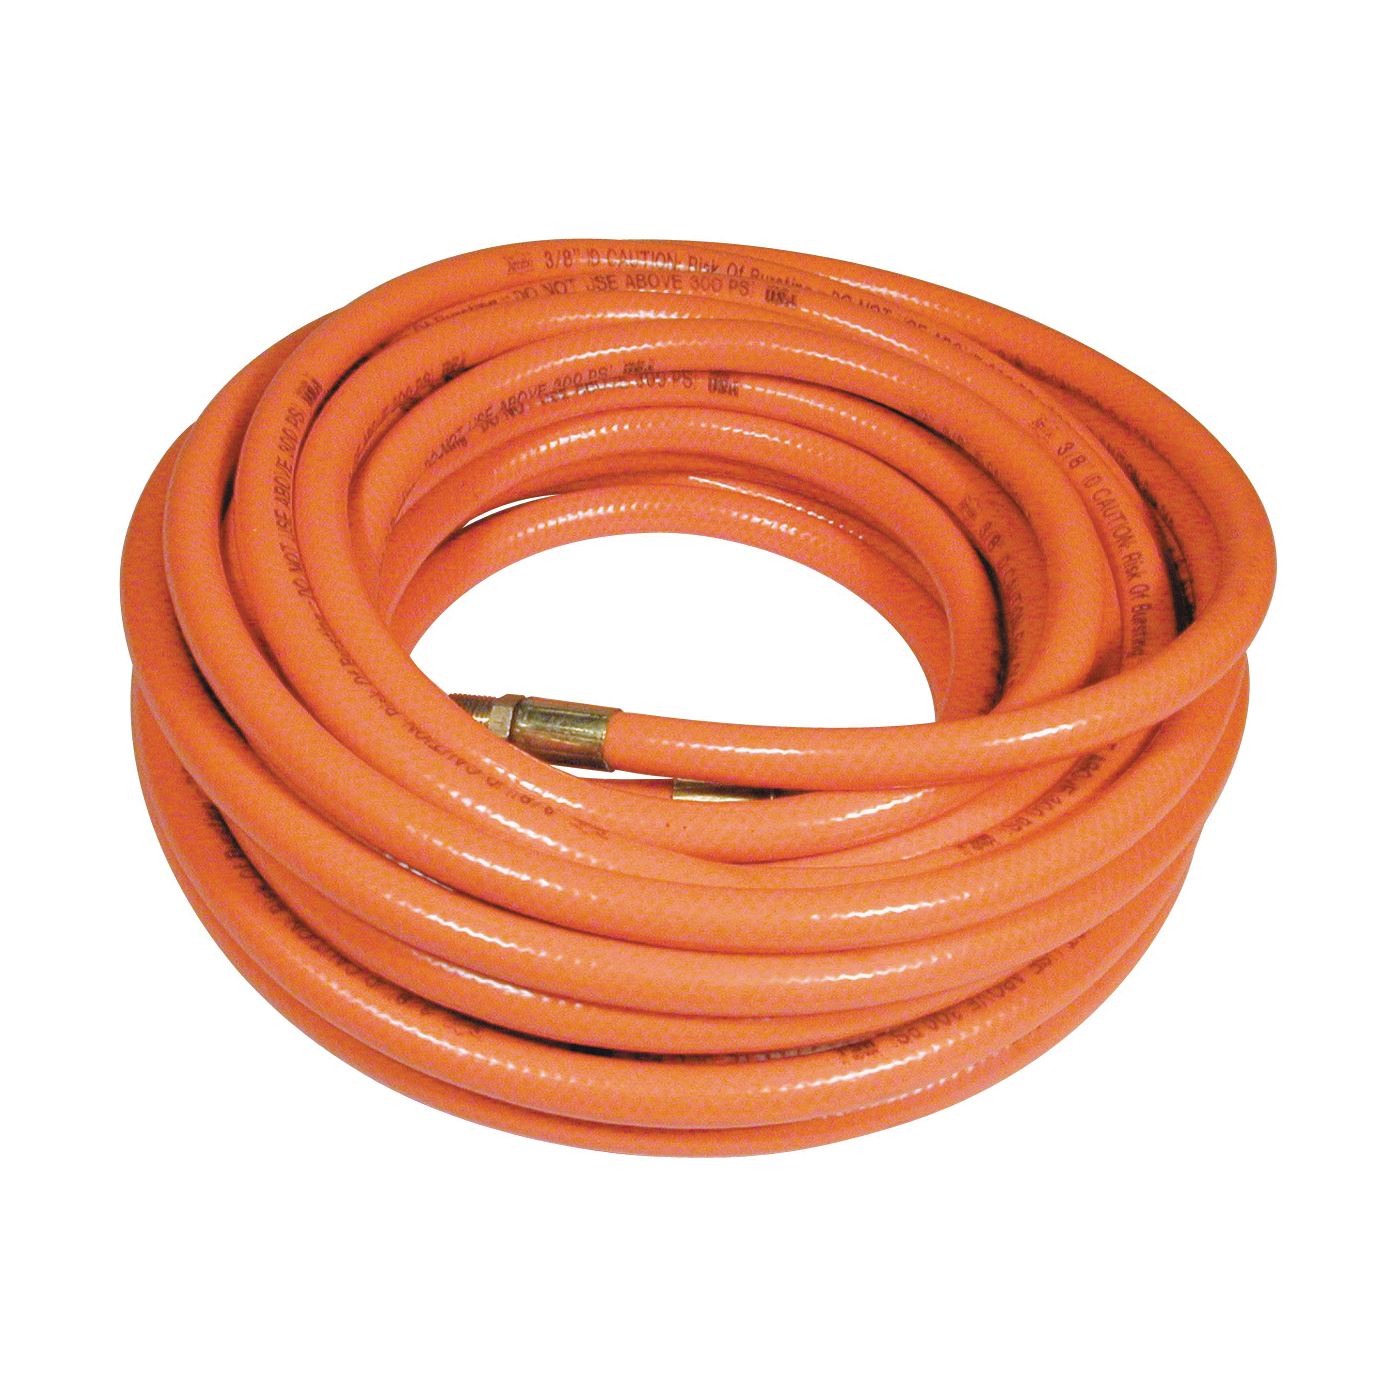 Picture of Amflo 576-50A Air Hose, 3/8 in OD, 50 ft L, MNPT, 300 psi Pressure, PVC, Orange